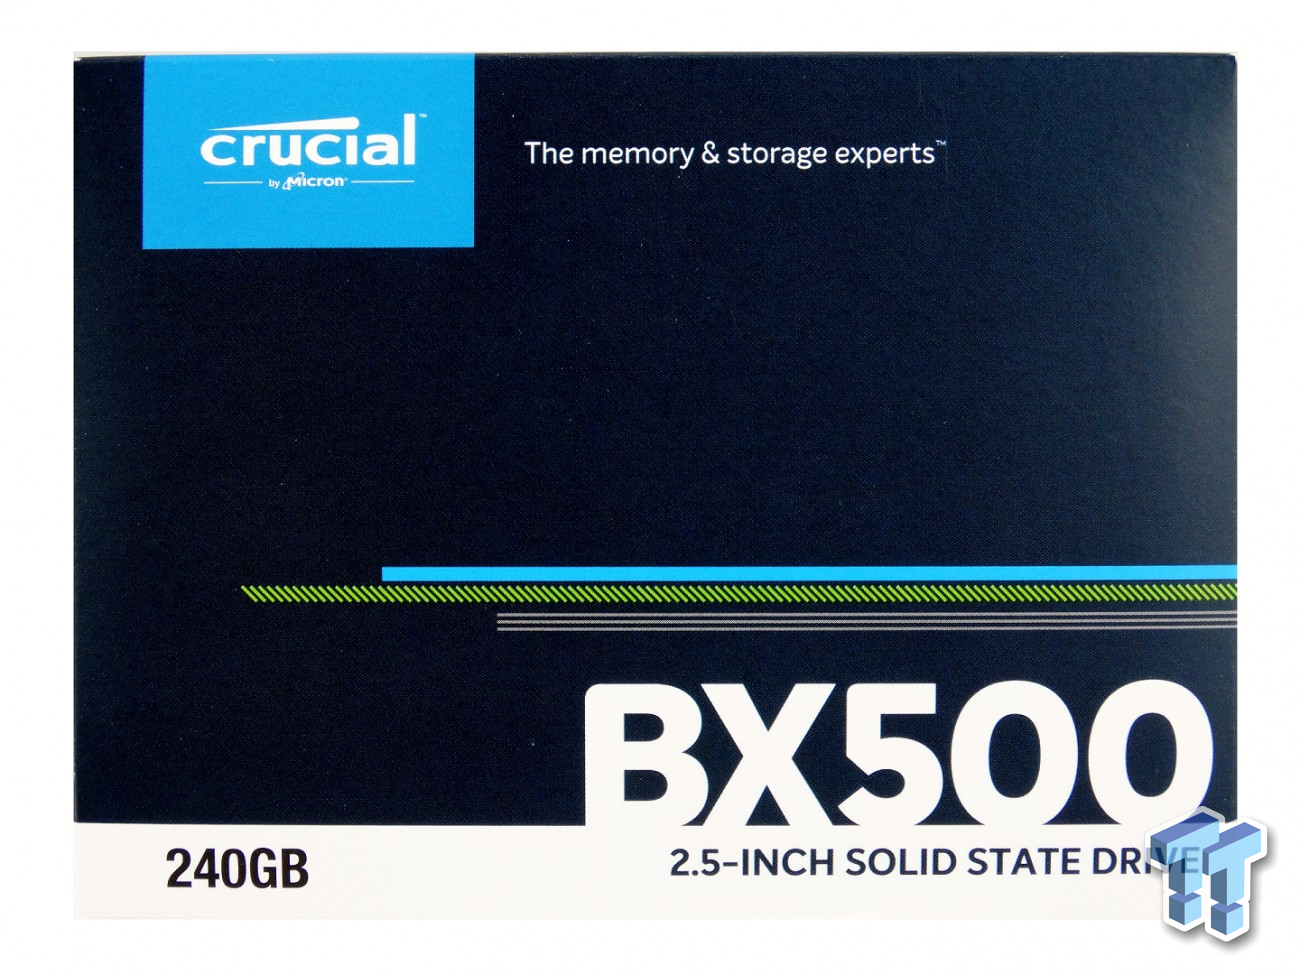 Crucial BX500 SSD Review - Fewer Components, Lower Prices